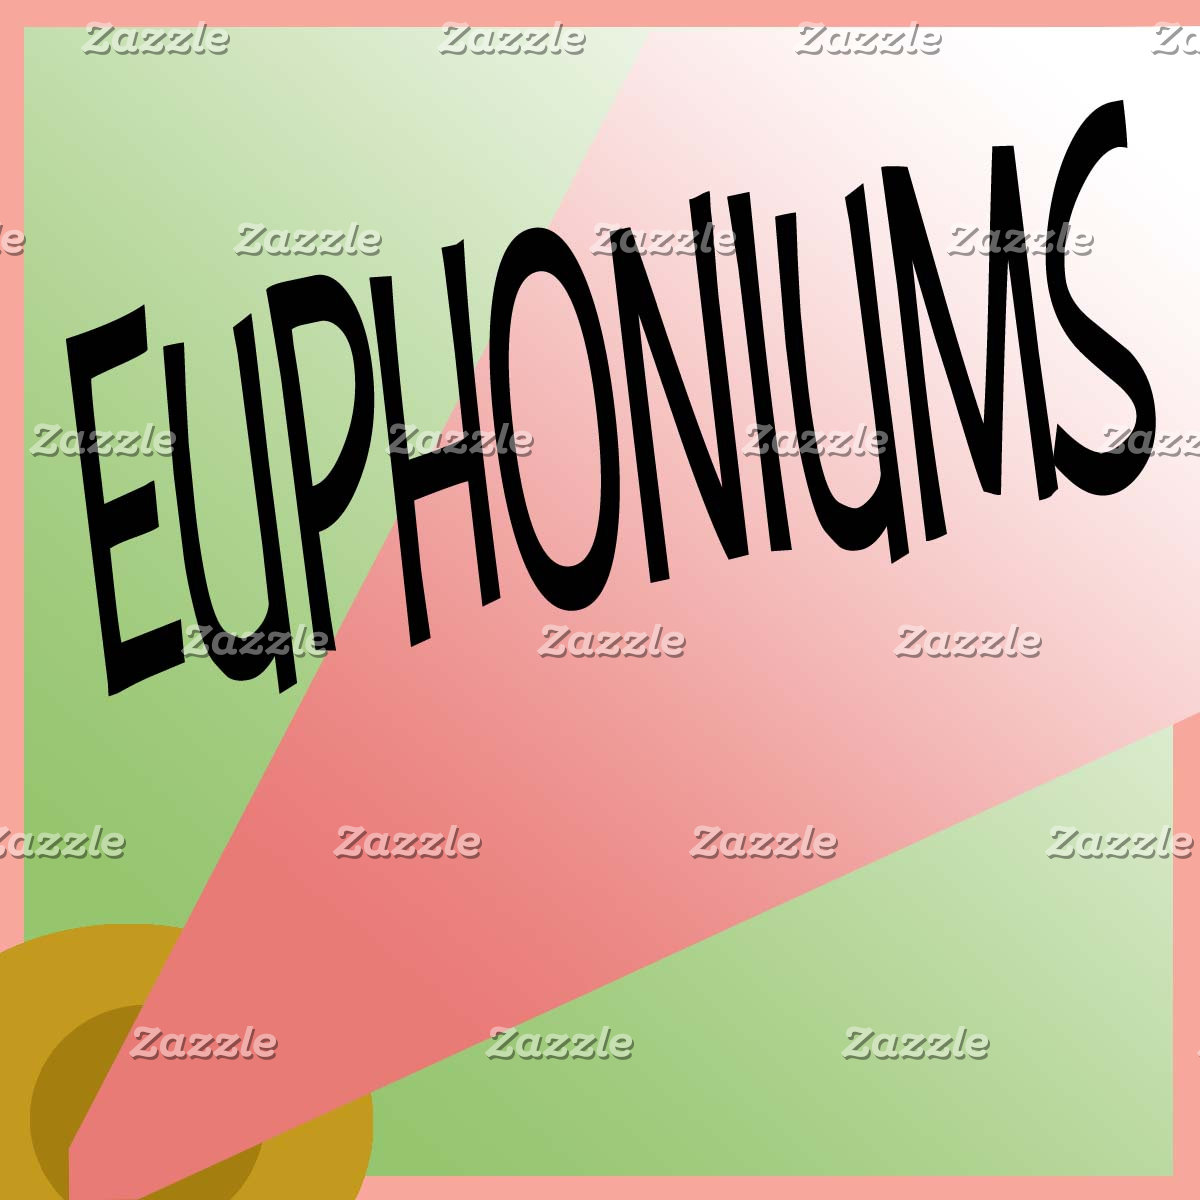 All Euphonium